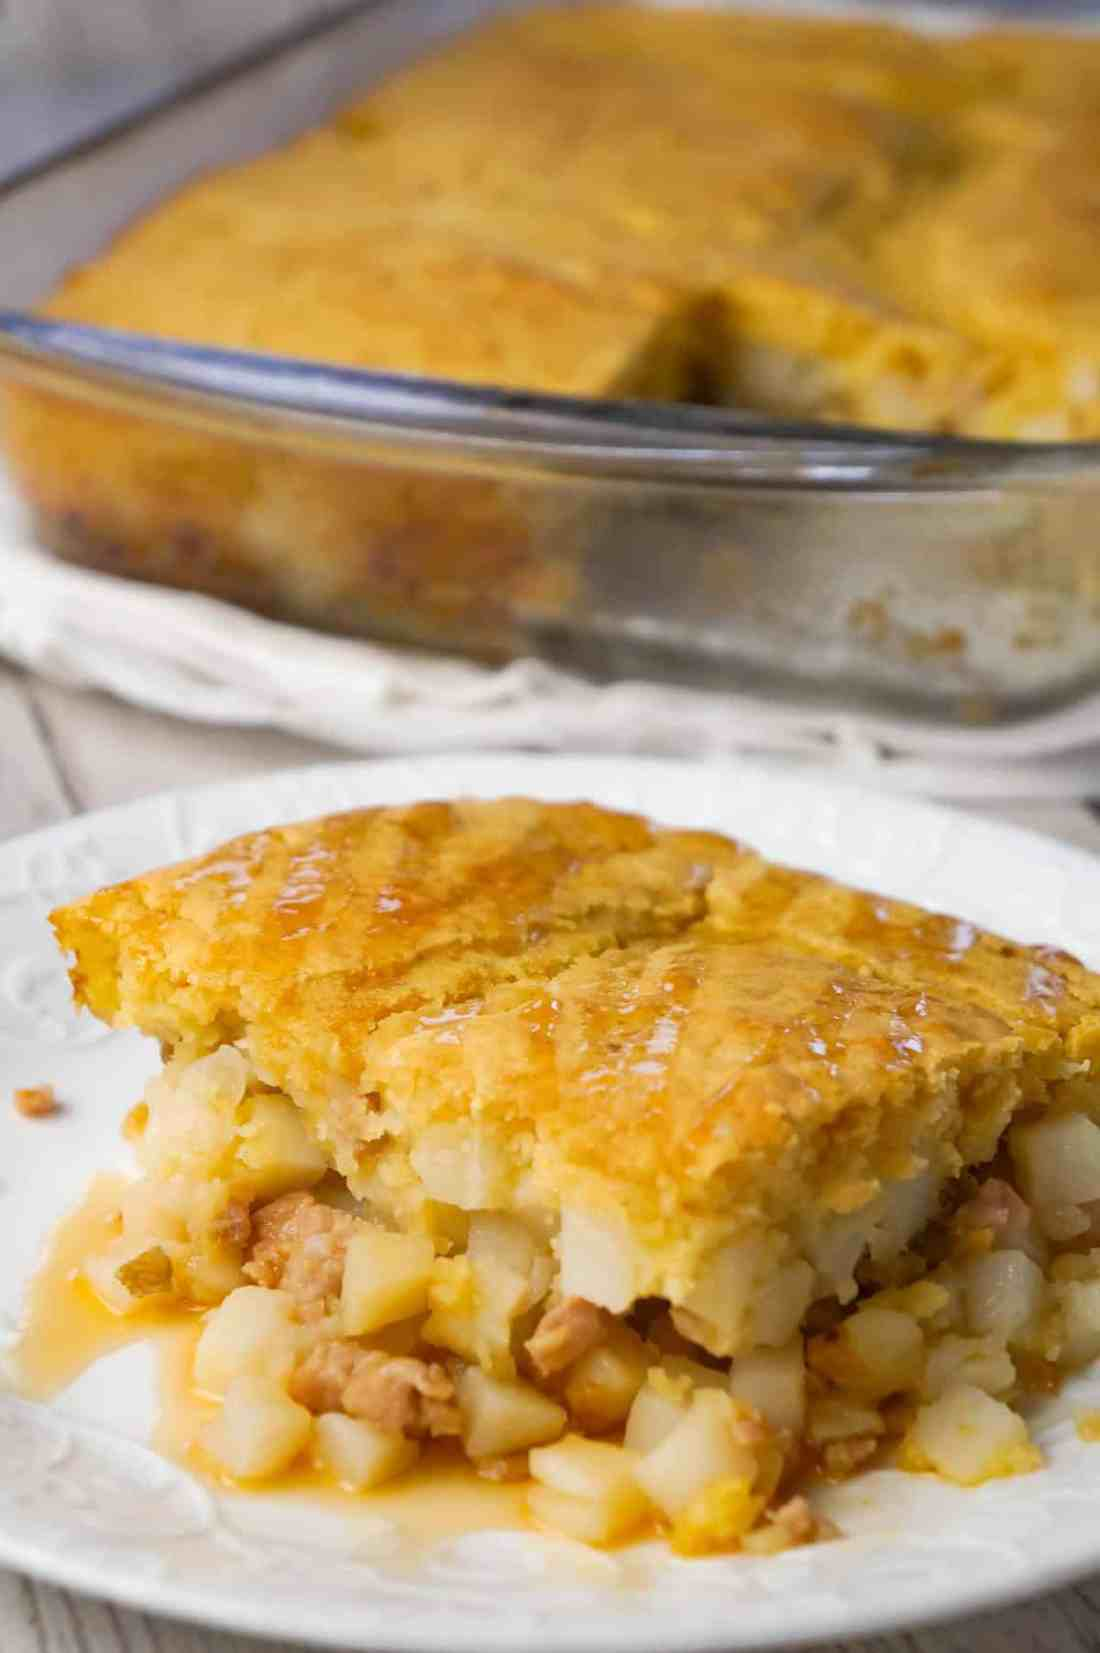 Sausage and Pancake Breakfast Casserole is an easy breakfast or brunch recipe loaded with ground sausage meat, hash brown potatoes and maple flavoured pancake batter.